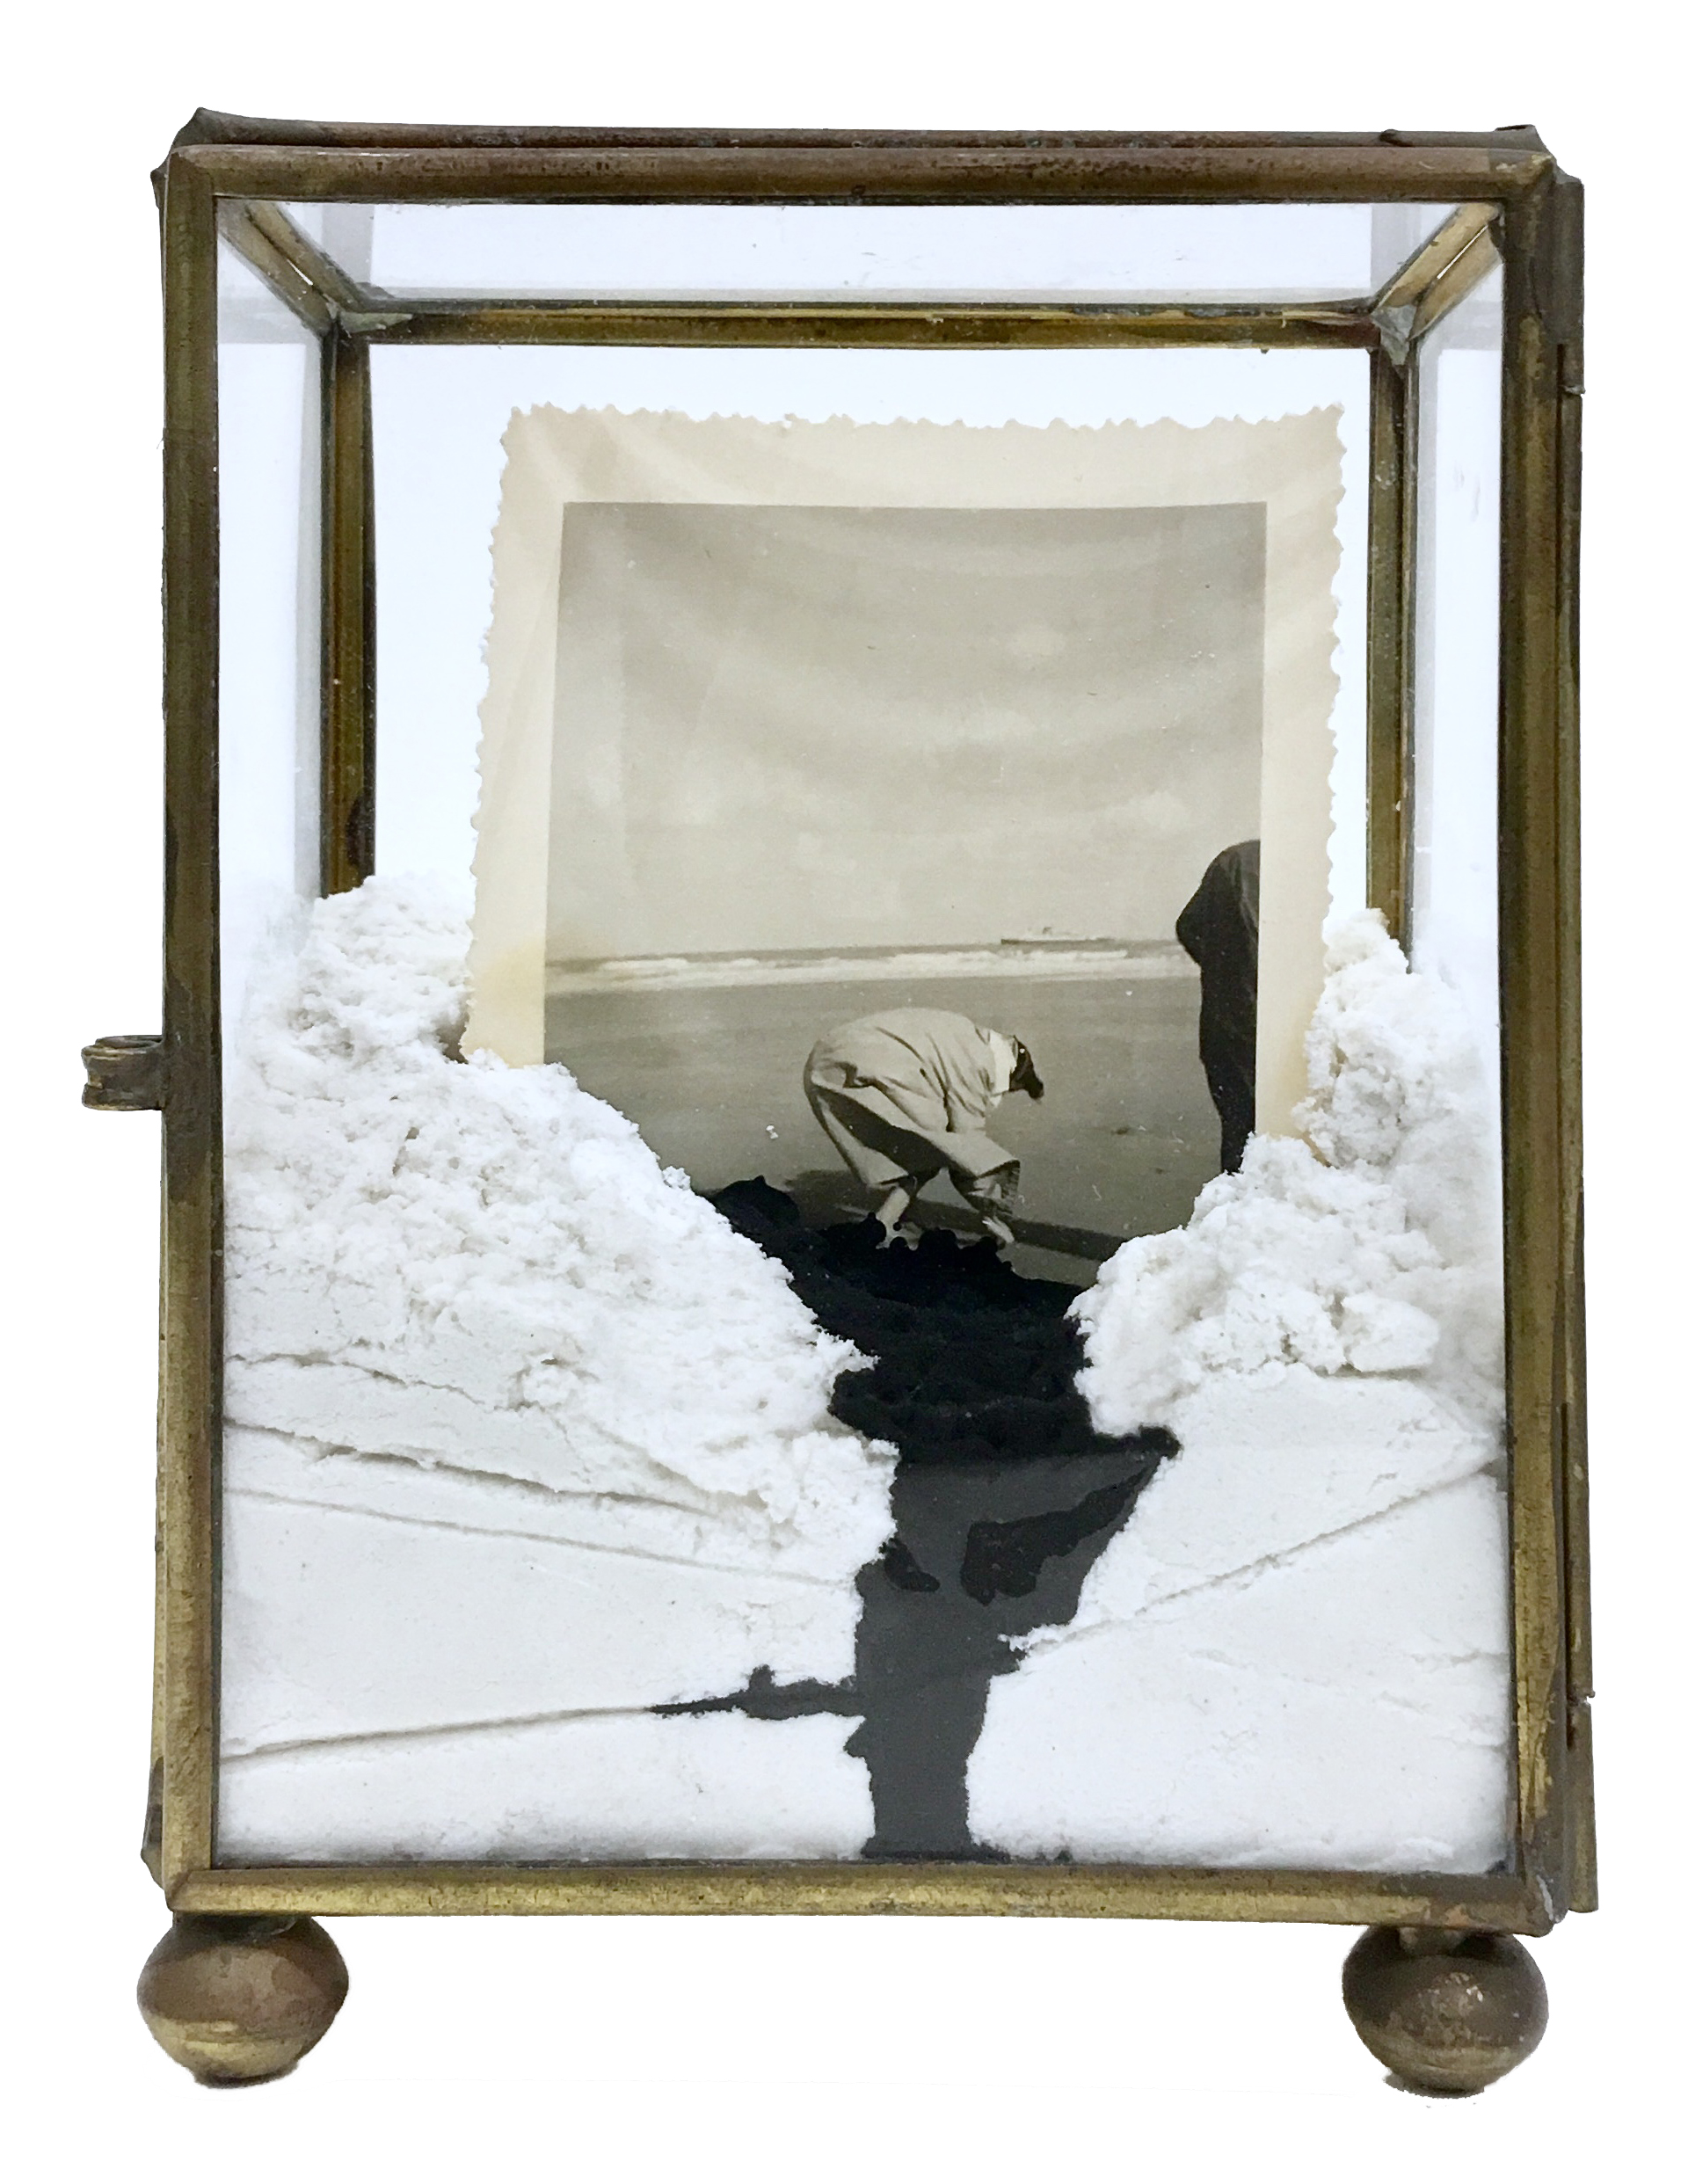 GaKO art. Lucia Tallova. On the beach, 14 x 10 x 7 cm, object, old glass showcase, mixed media, 2017